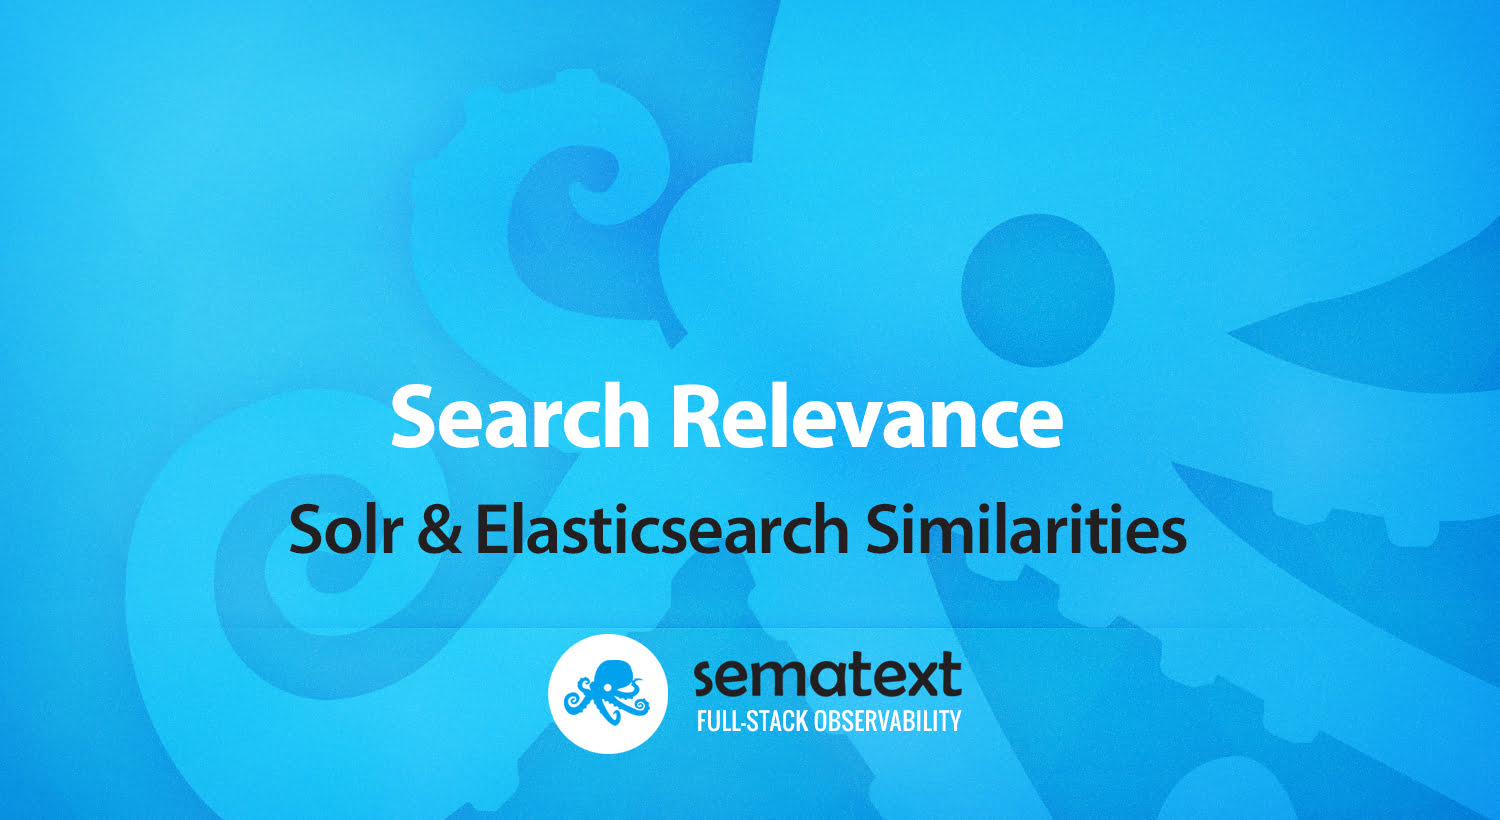 Search Relevance - Solr & Elasticsearch Similarities